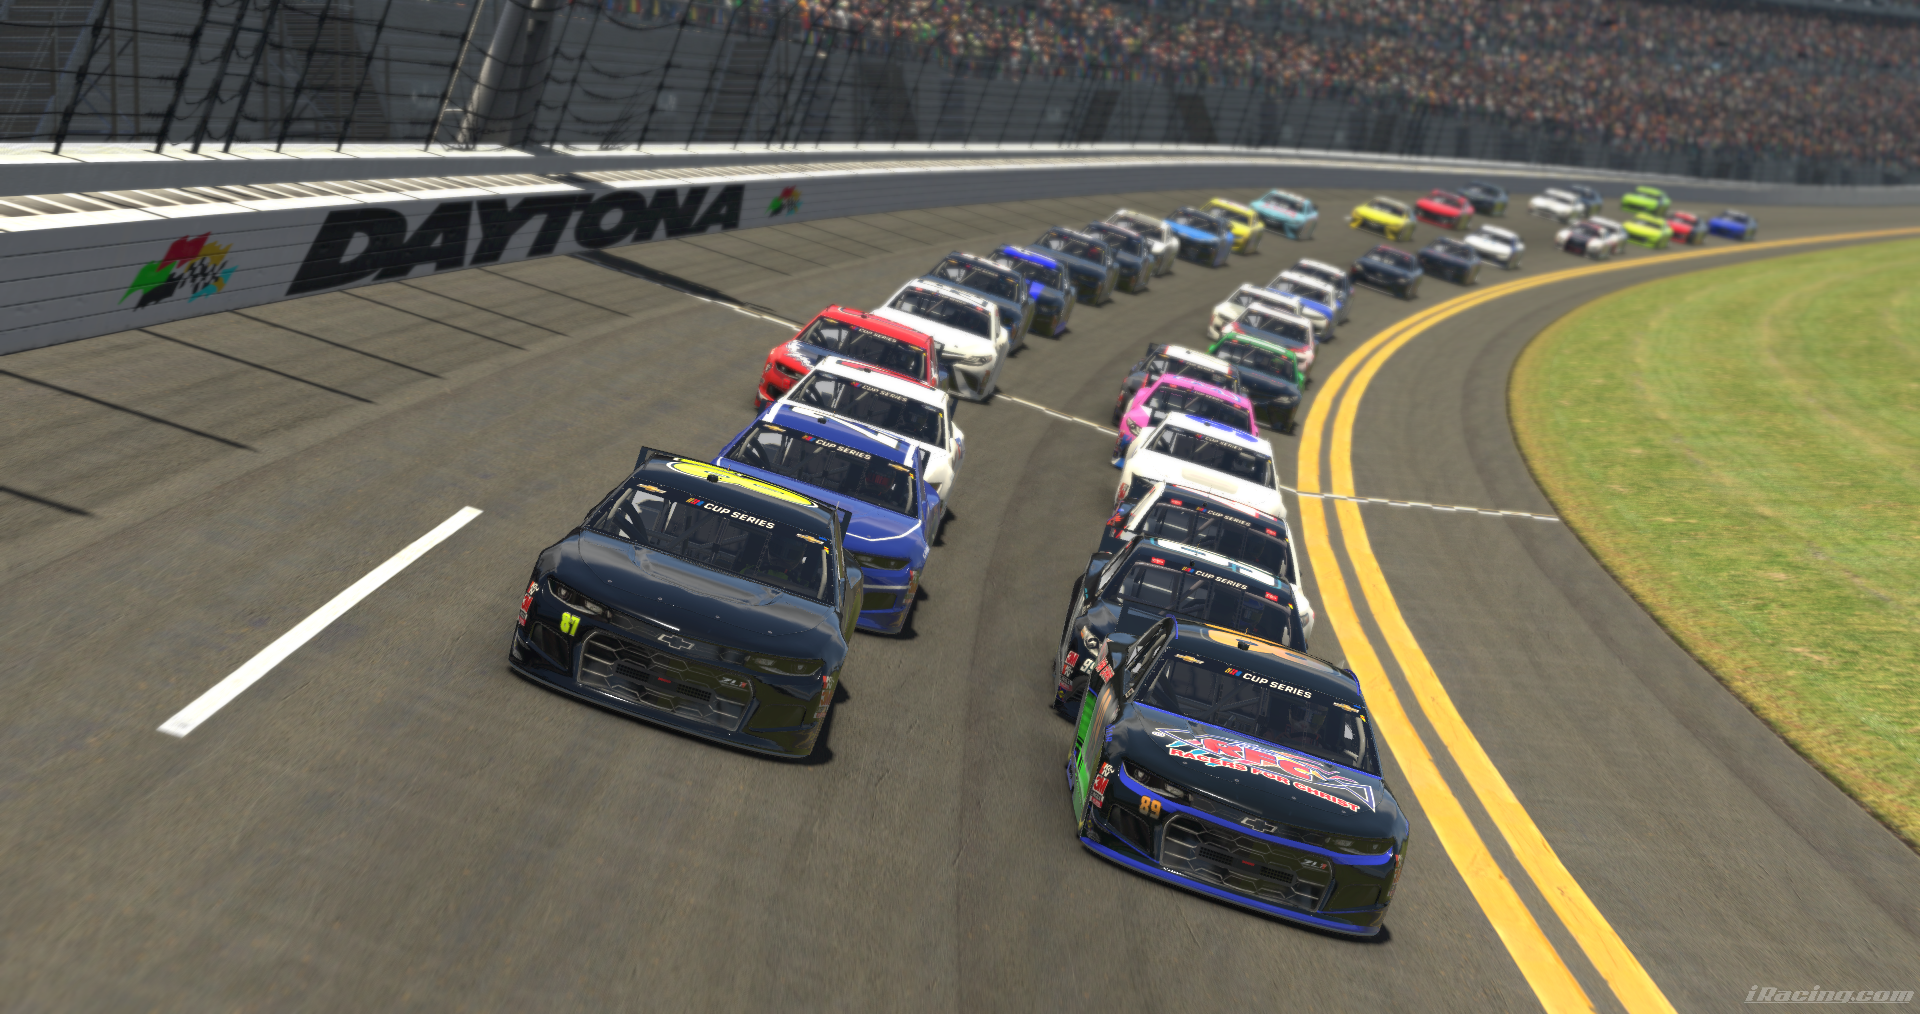 Third Annual Podium Esports Daytona 500 To Be Run Feb 7 2021 Kickin The Tires